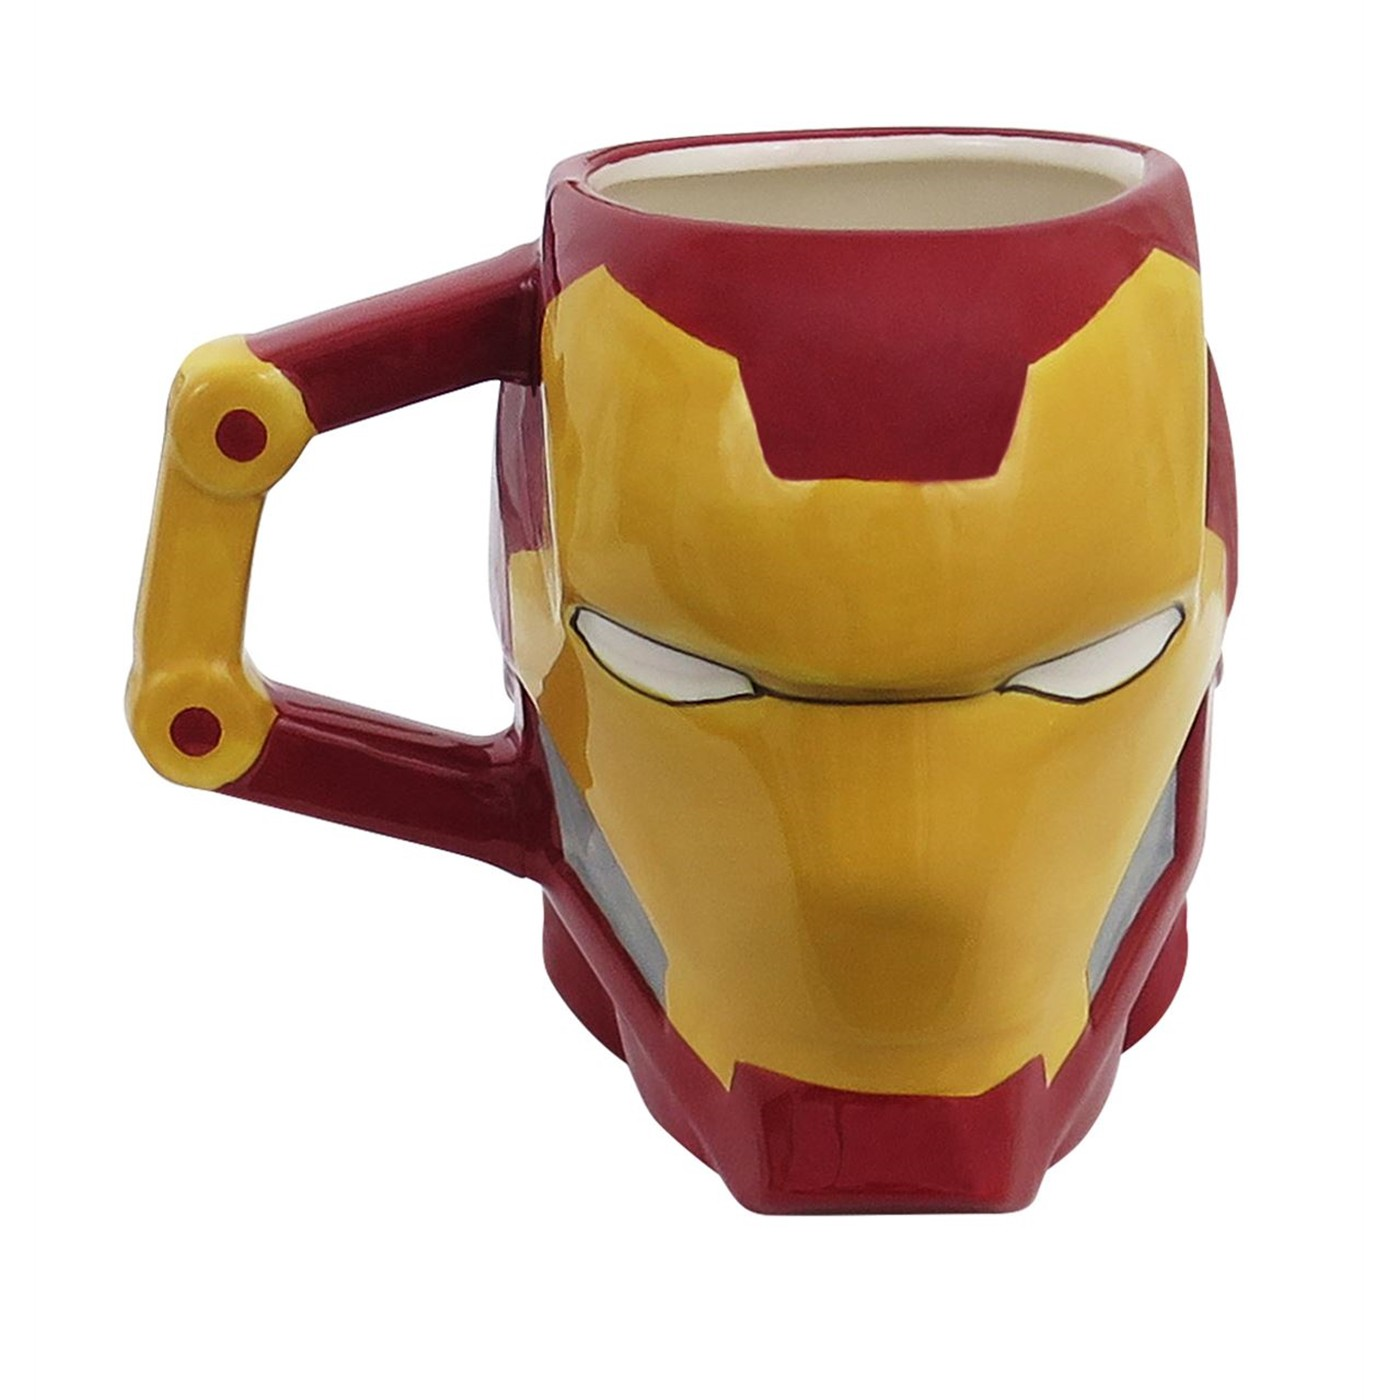 Iron Man Helmet 20oz Sculpted Ceramic Mug